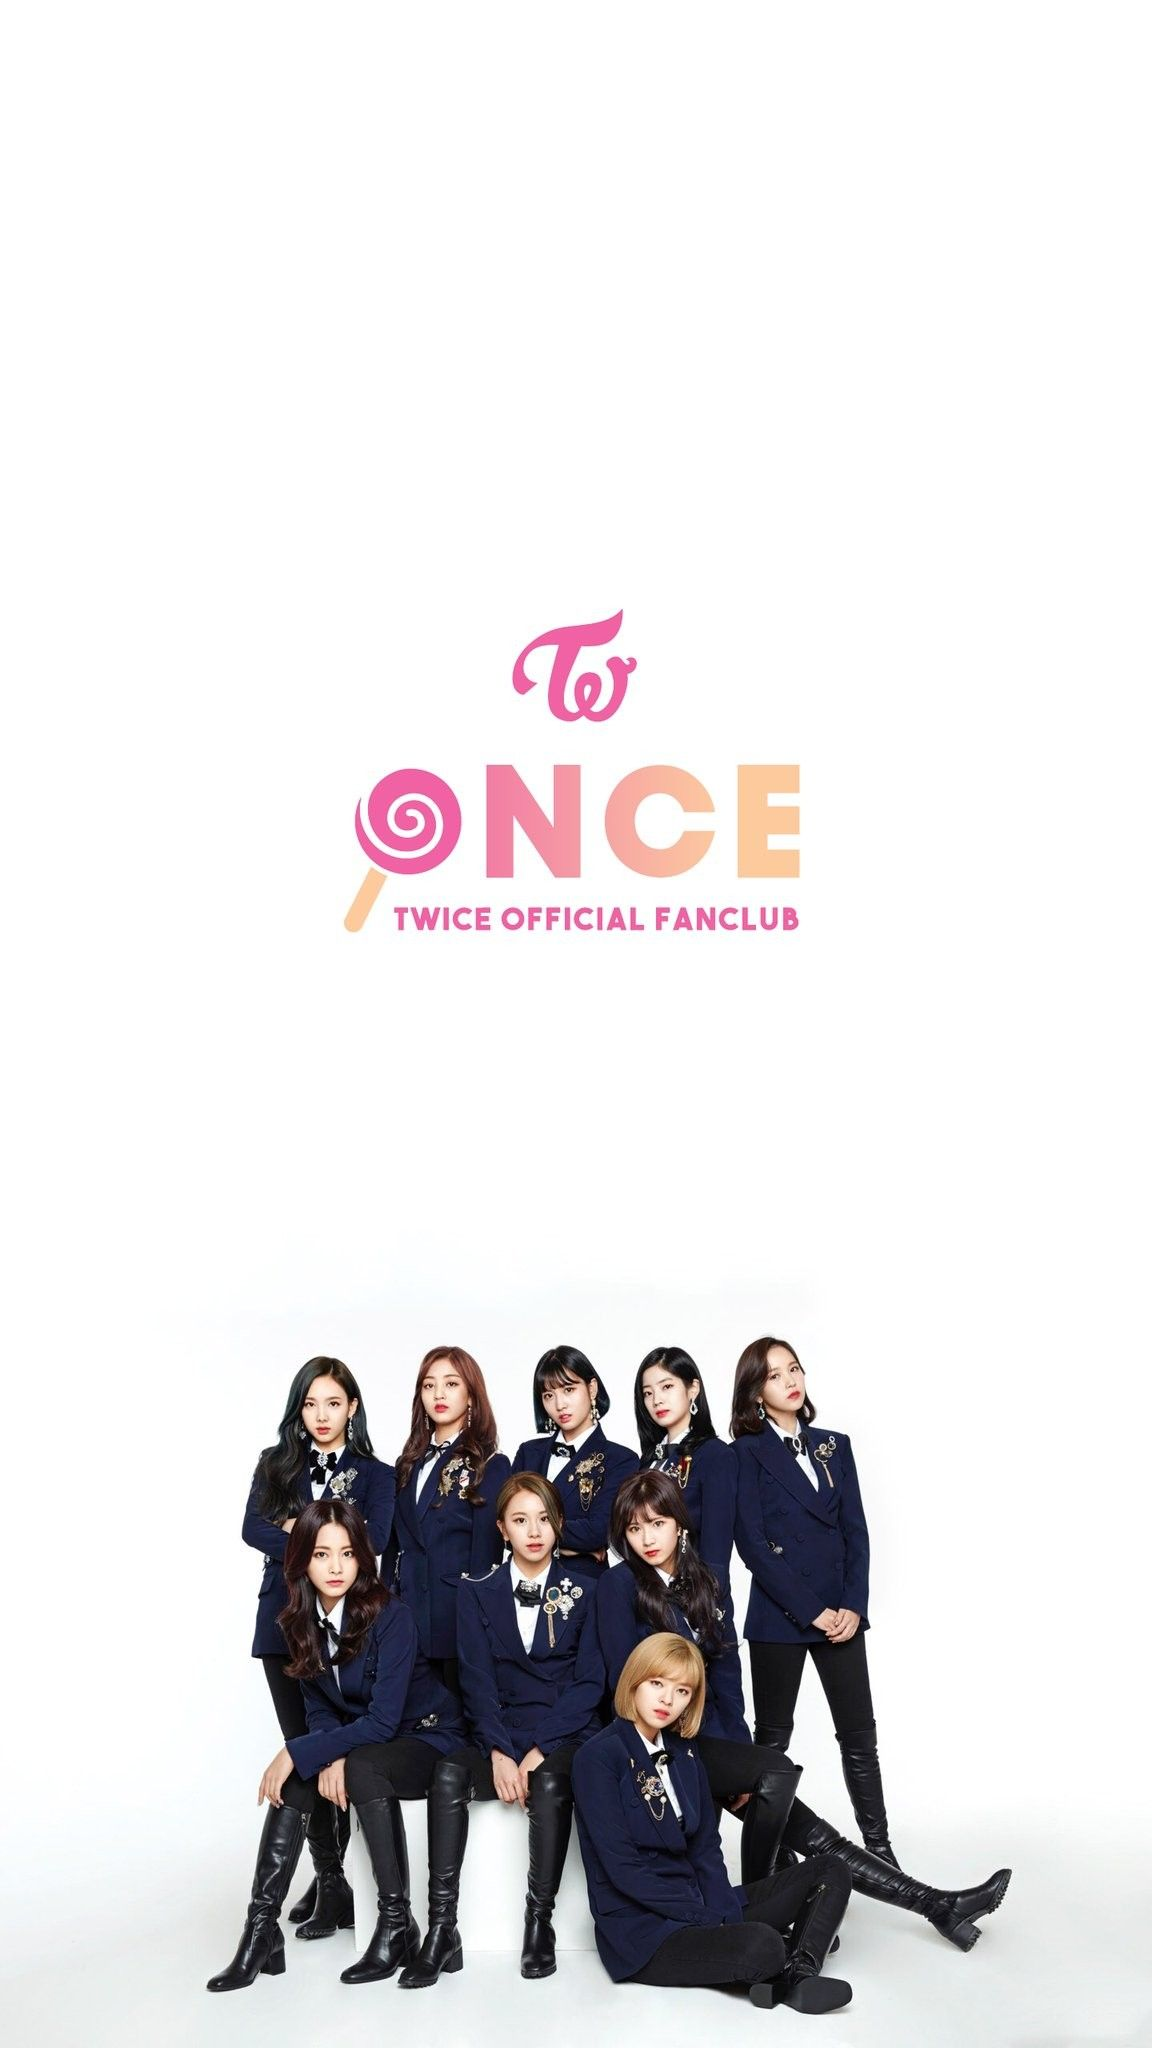 Twice Official Fanclub Once 2nd Generation Wallpaper Twice Kpop Twice Twice Group